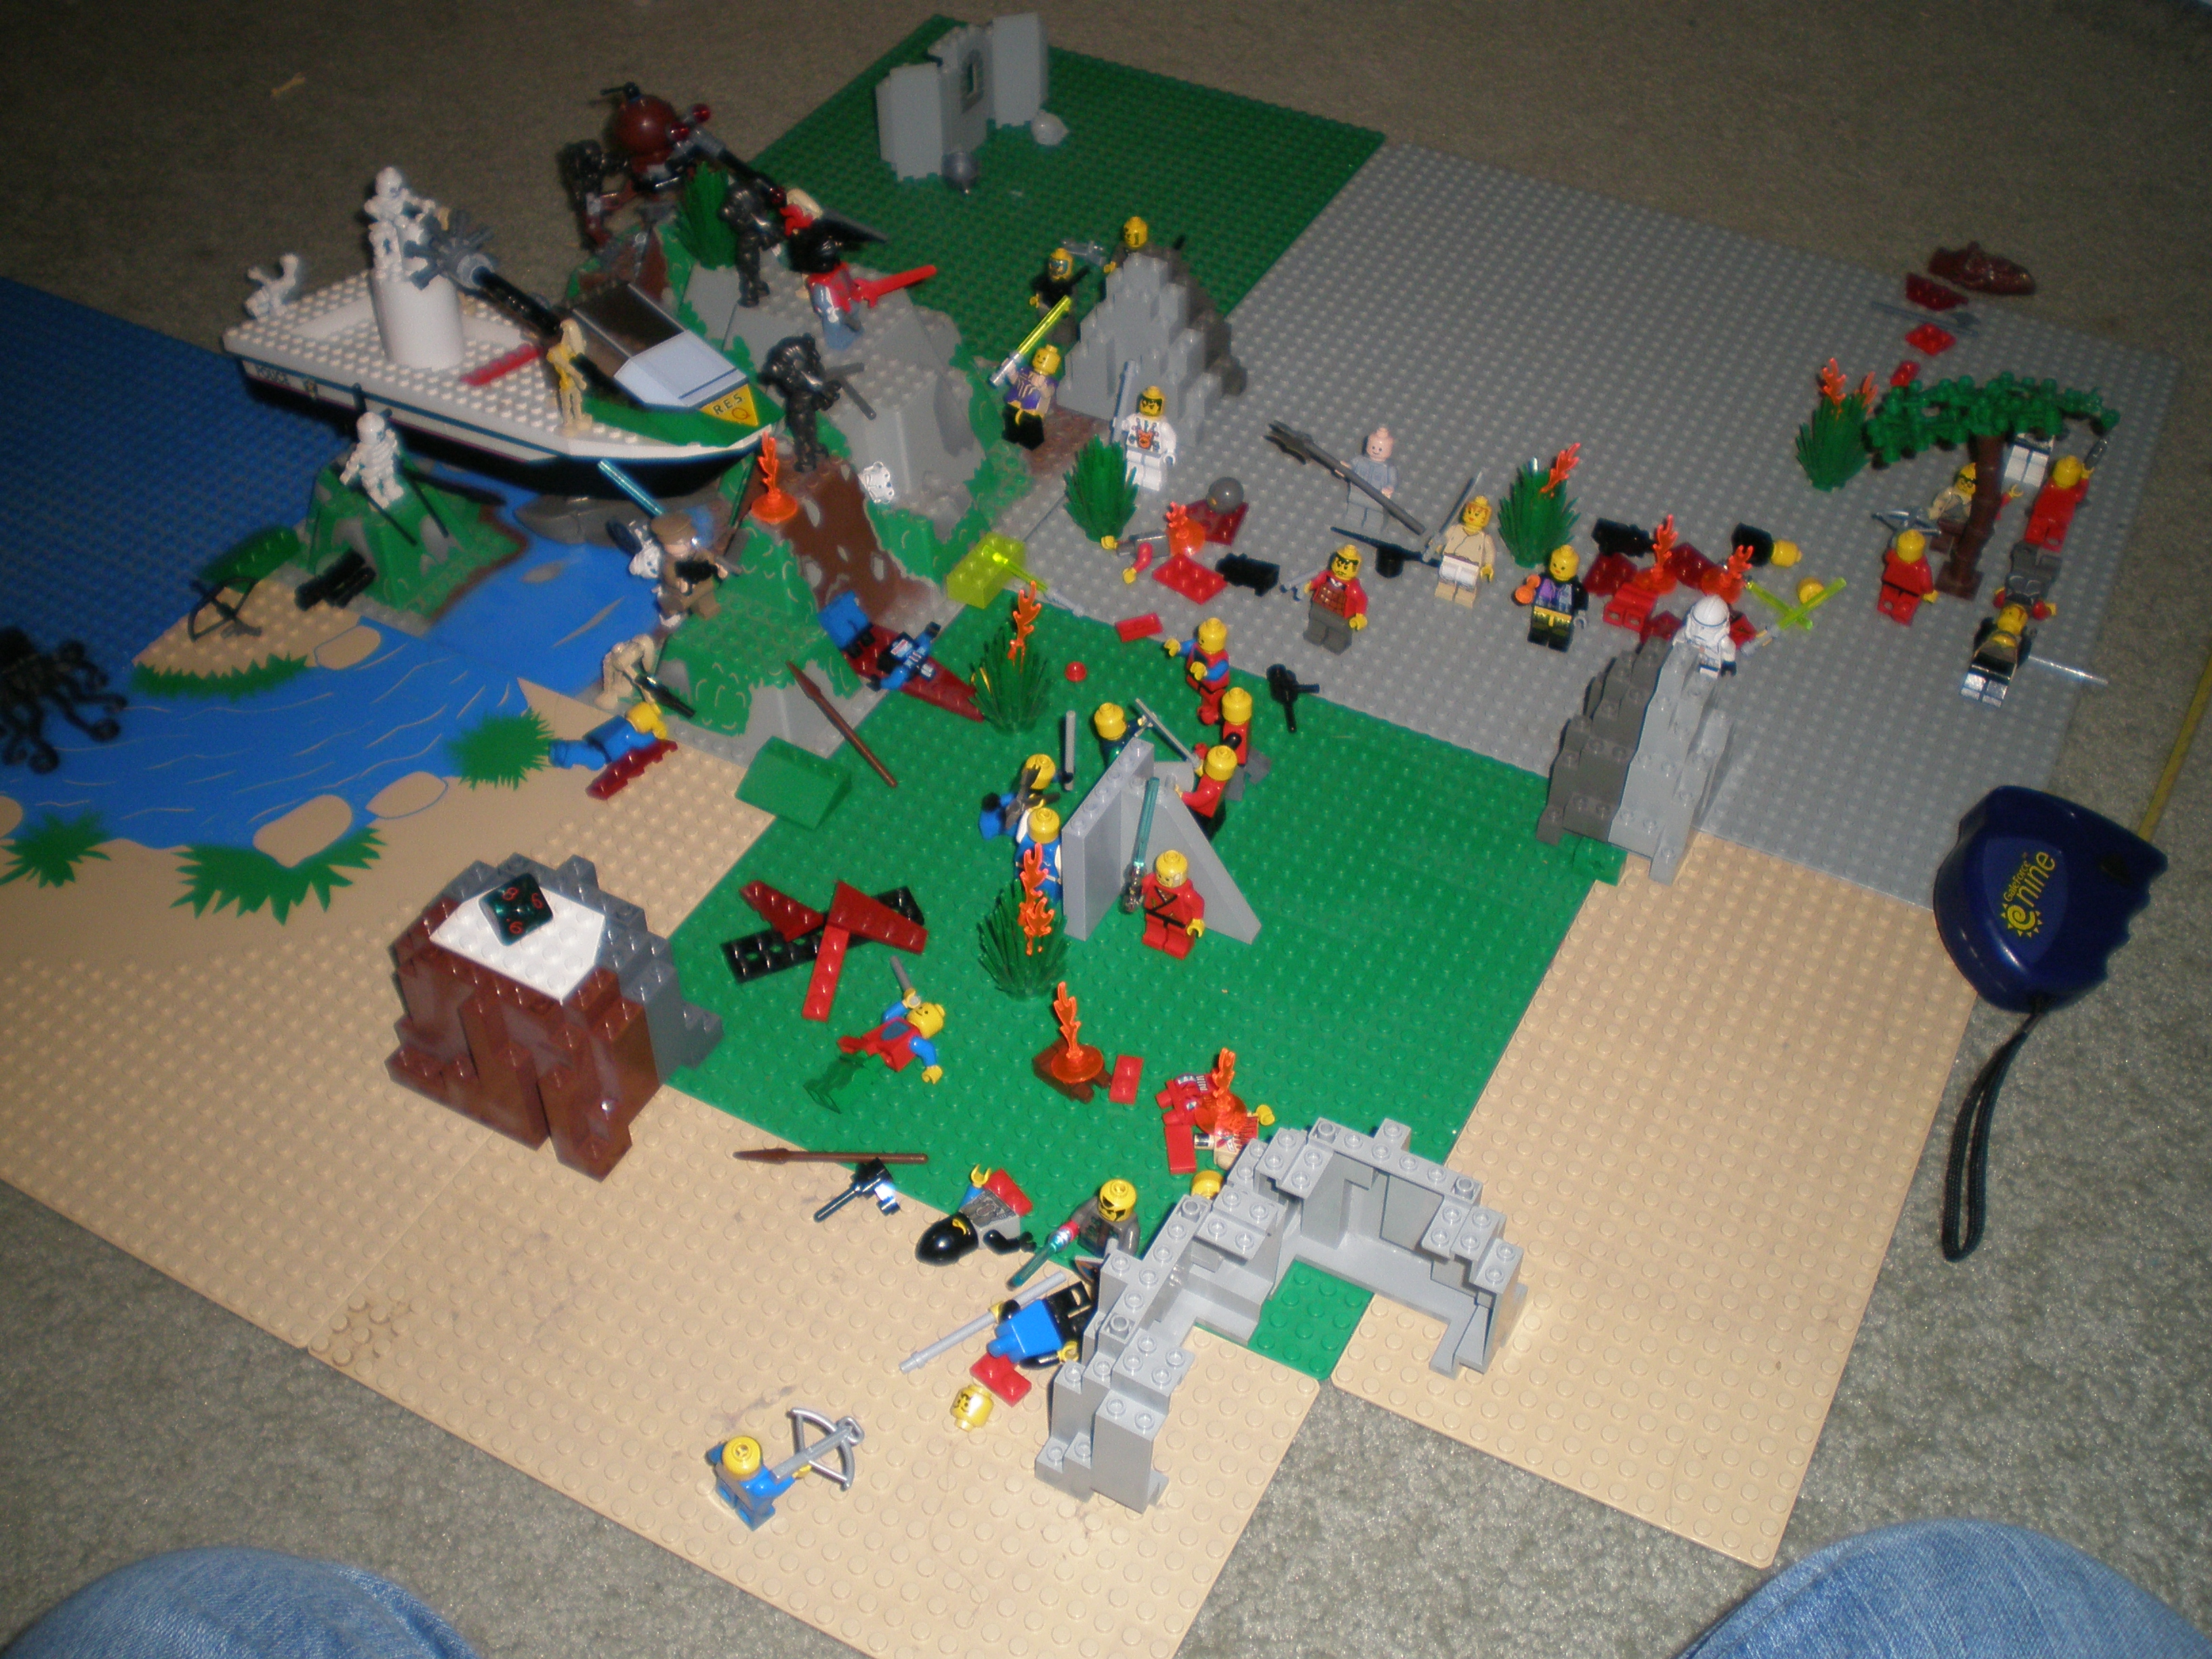 armagendon_lego_battle_006.jpg